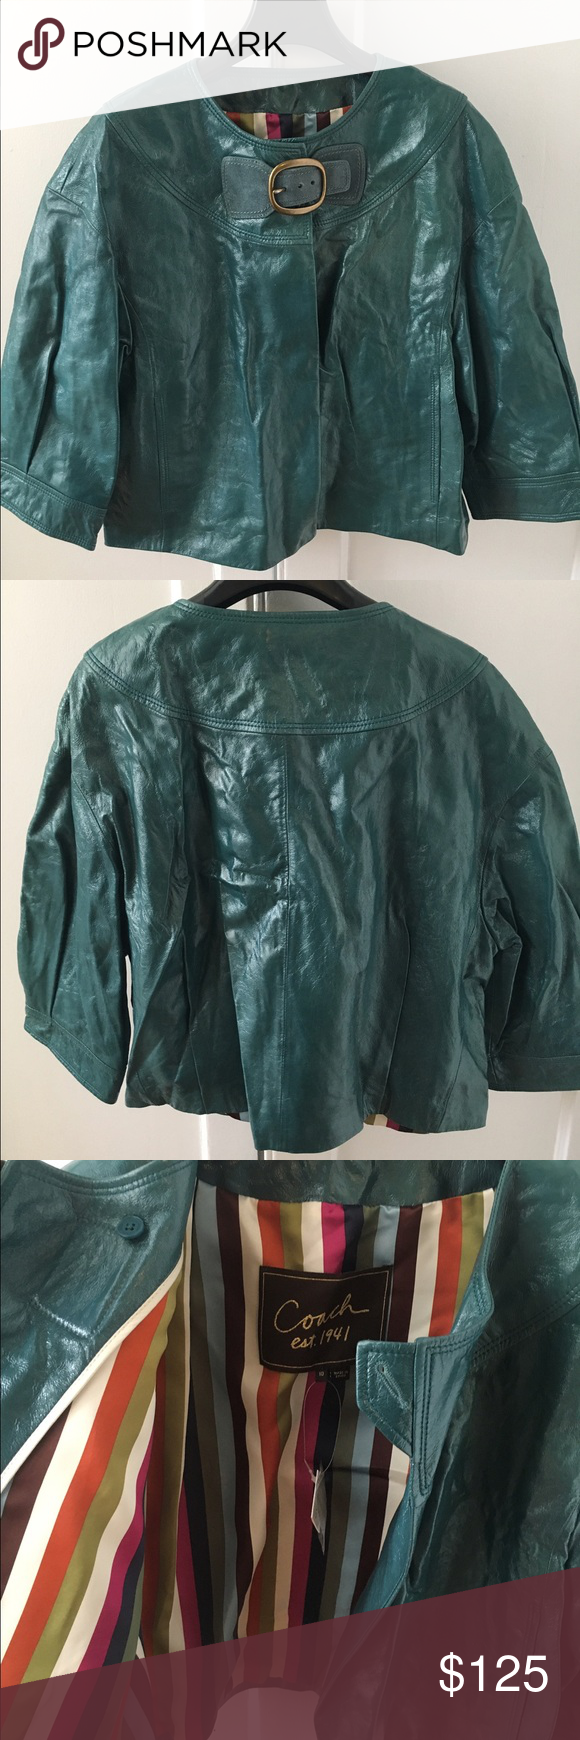 COACH teal patent leather cropped jacket NWT Crop jacket